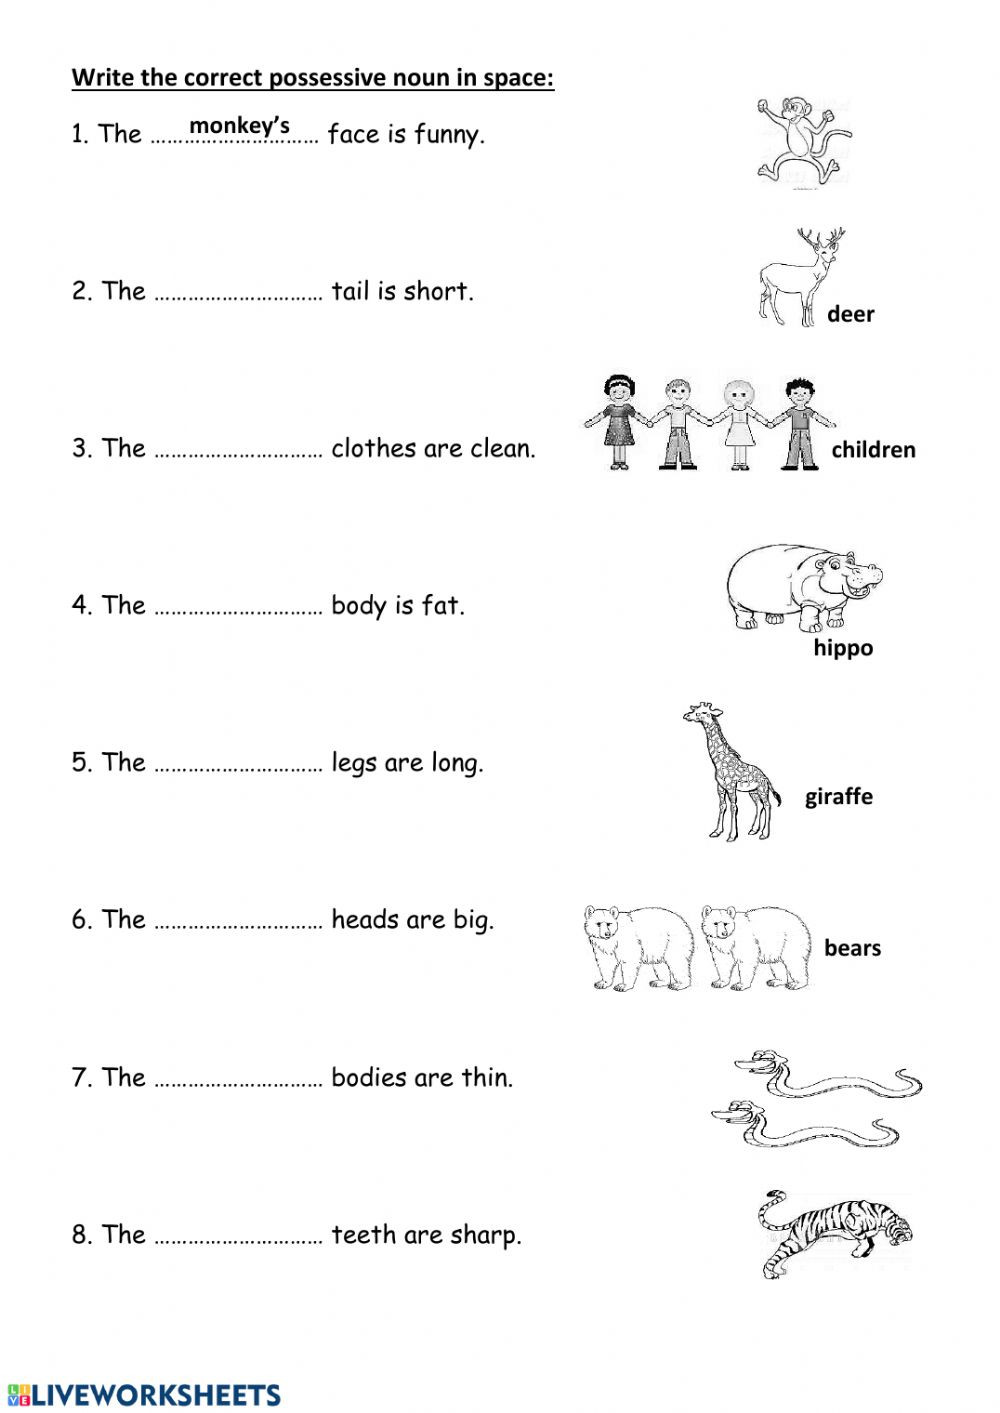 Possessive Nouns Worksheet 2nd Grade Possessive Nouns Grammar Worksheet